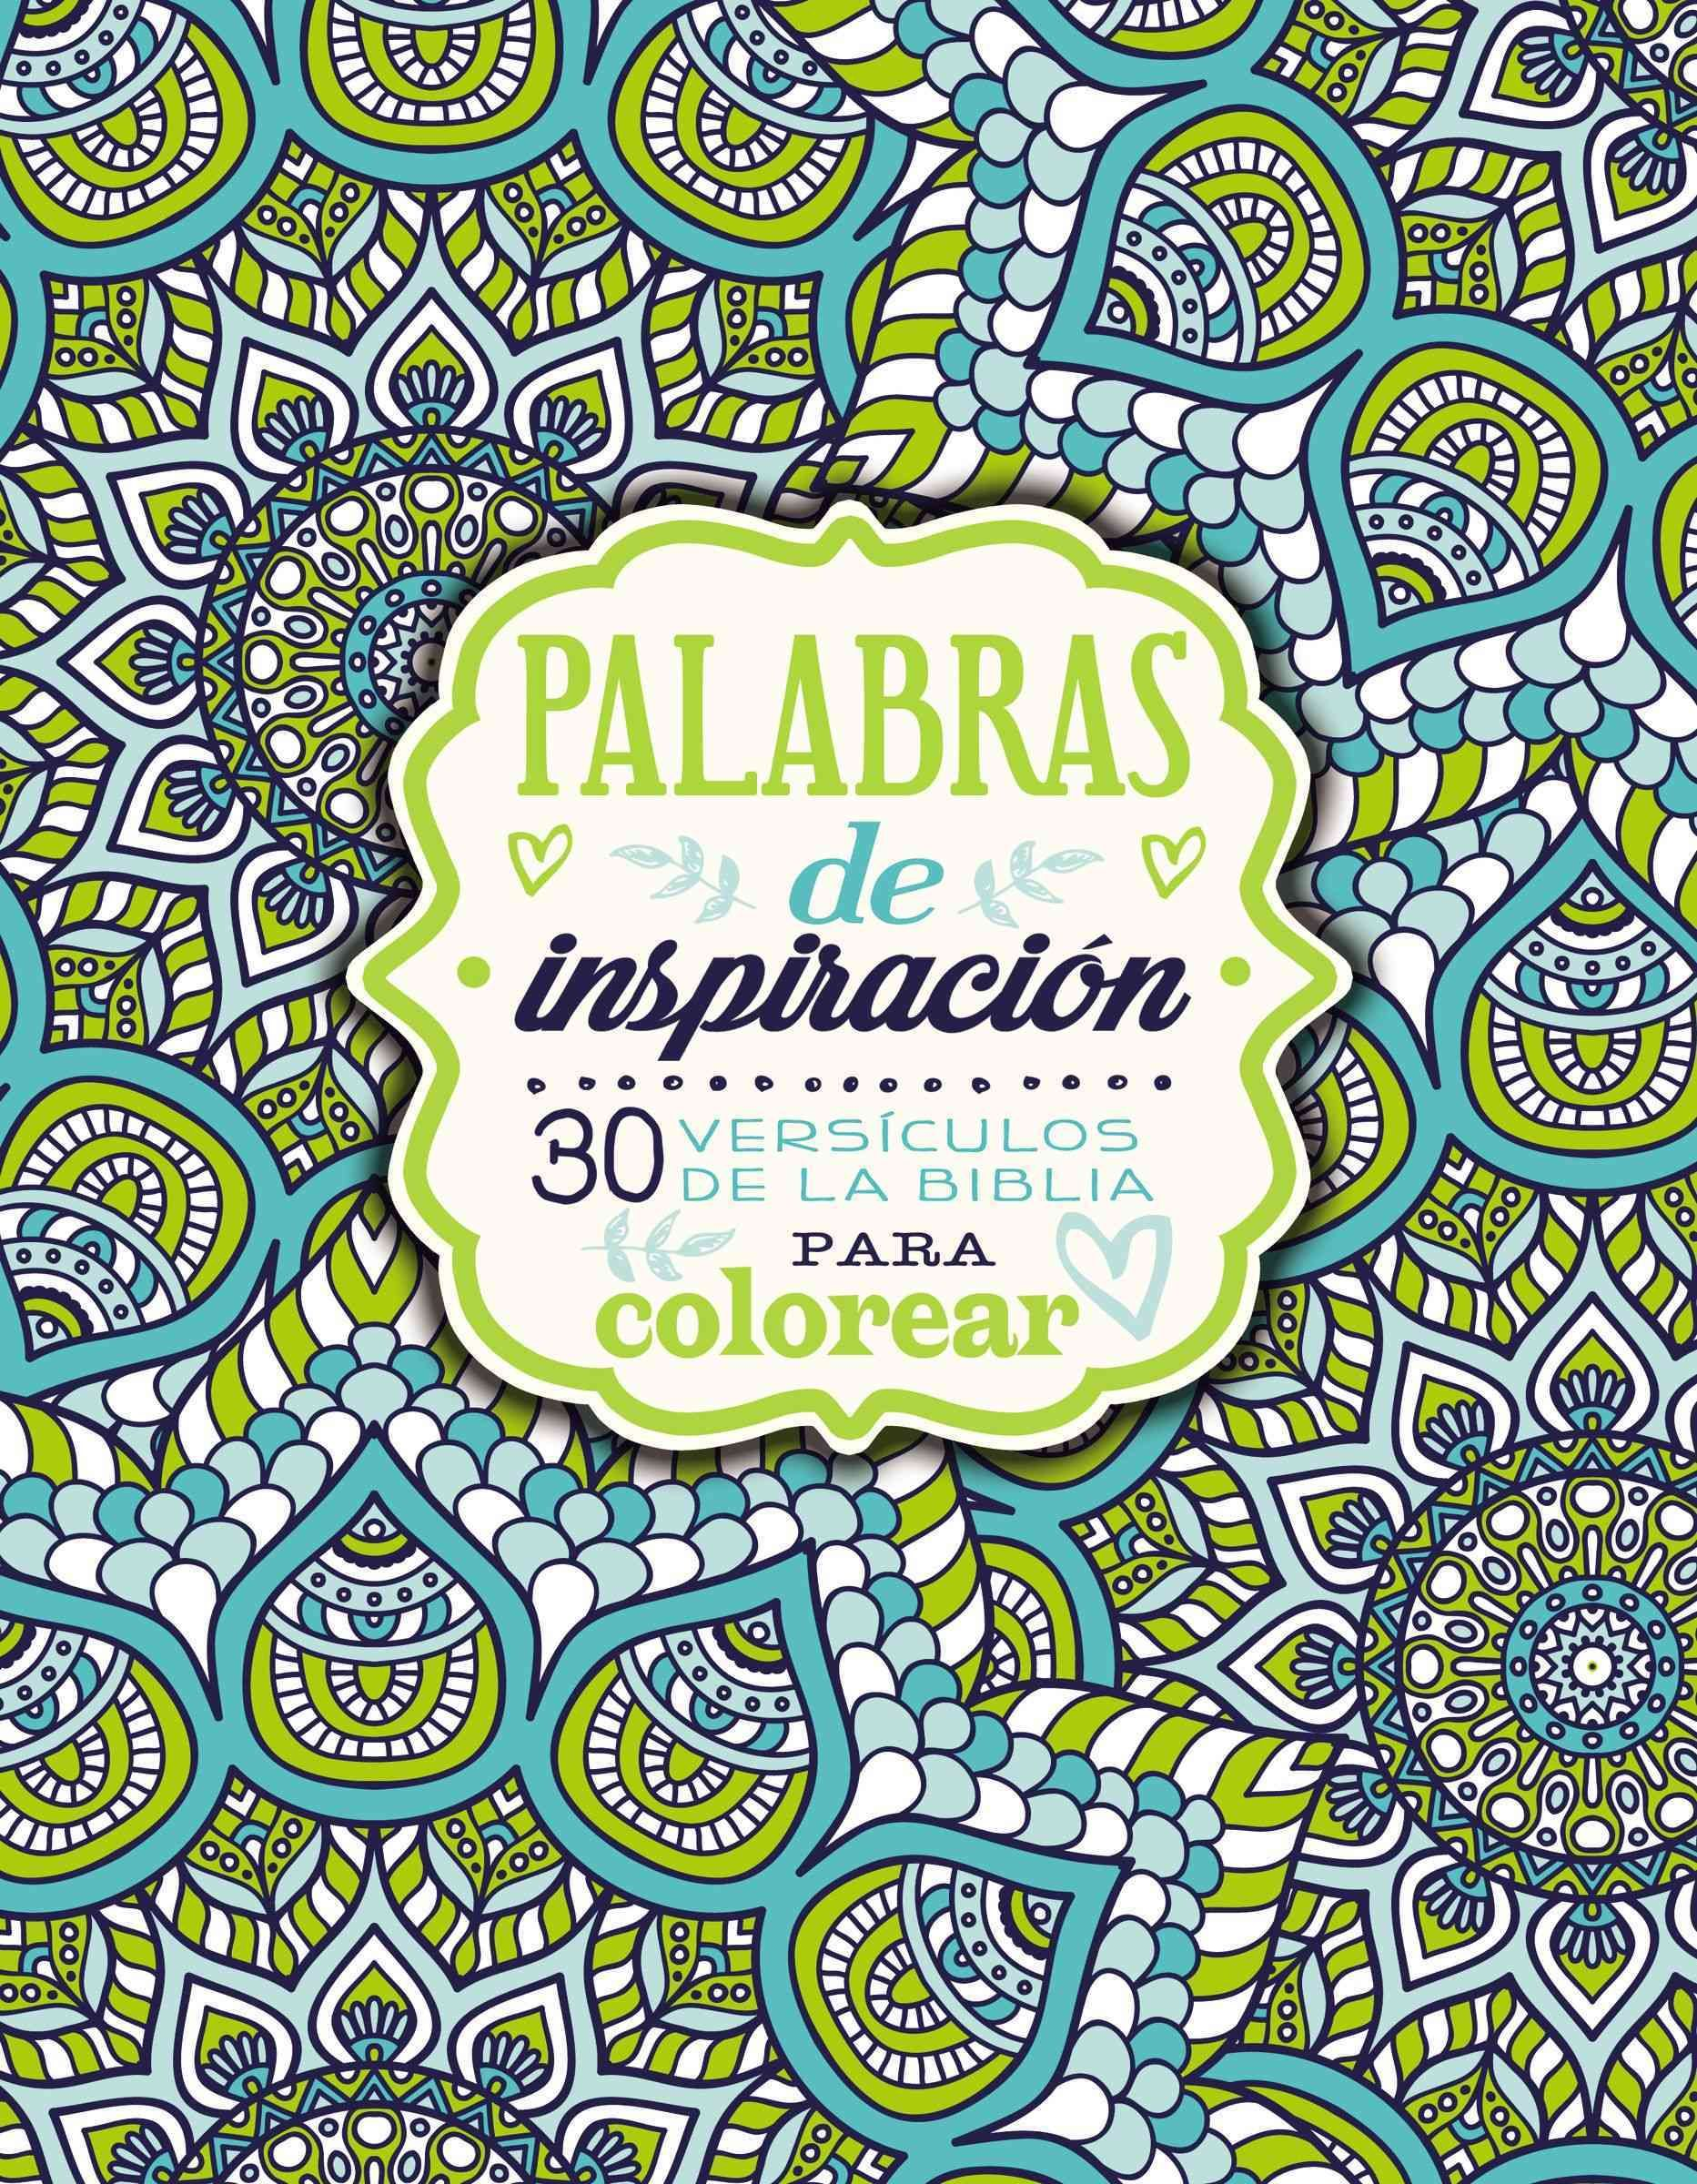 Palabras de inspiracion/ Words of inspiration: 30 versiculos de la ...